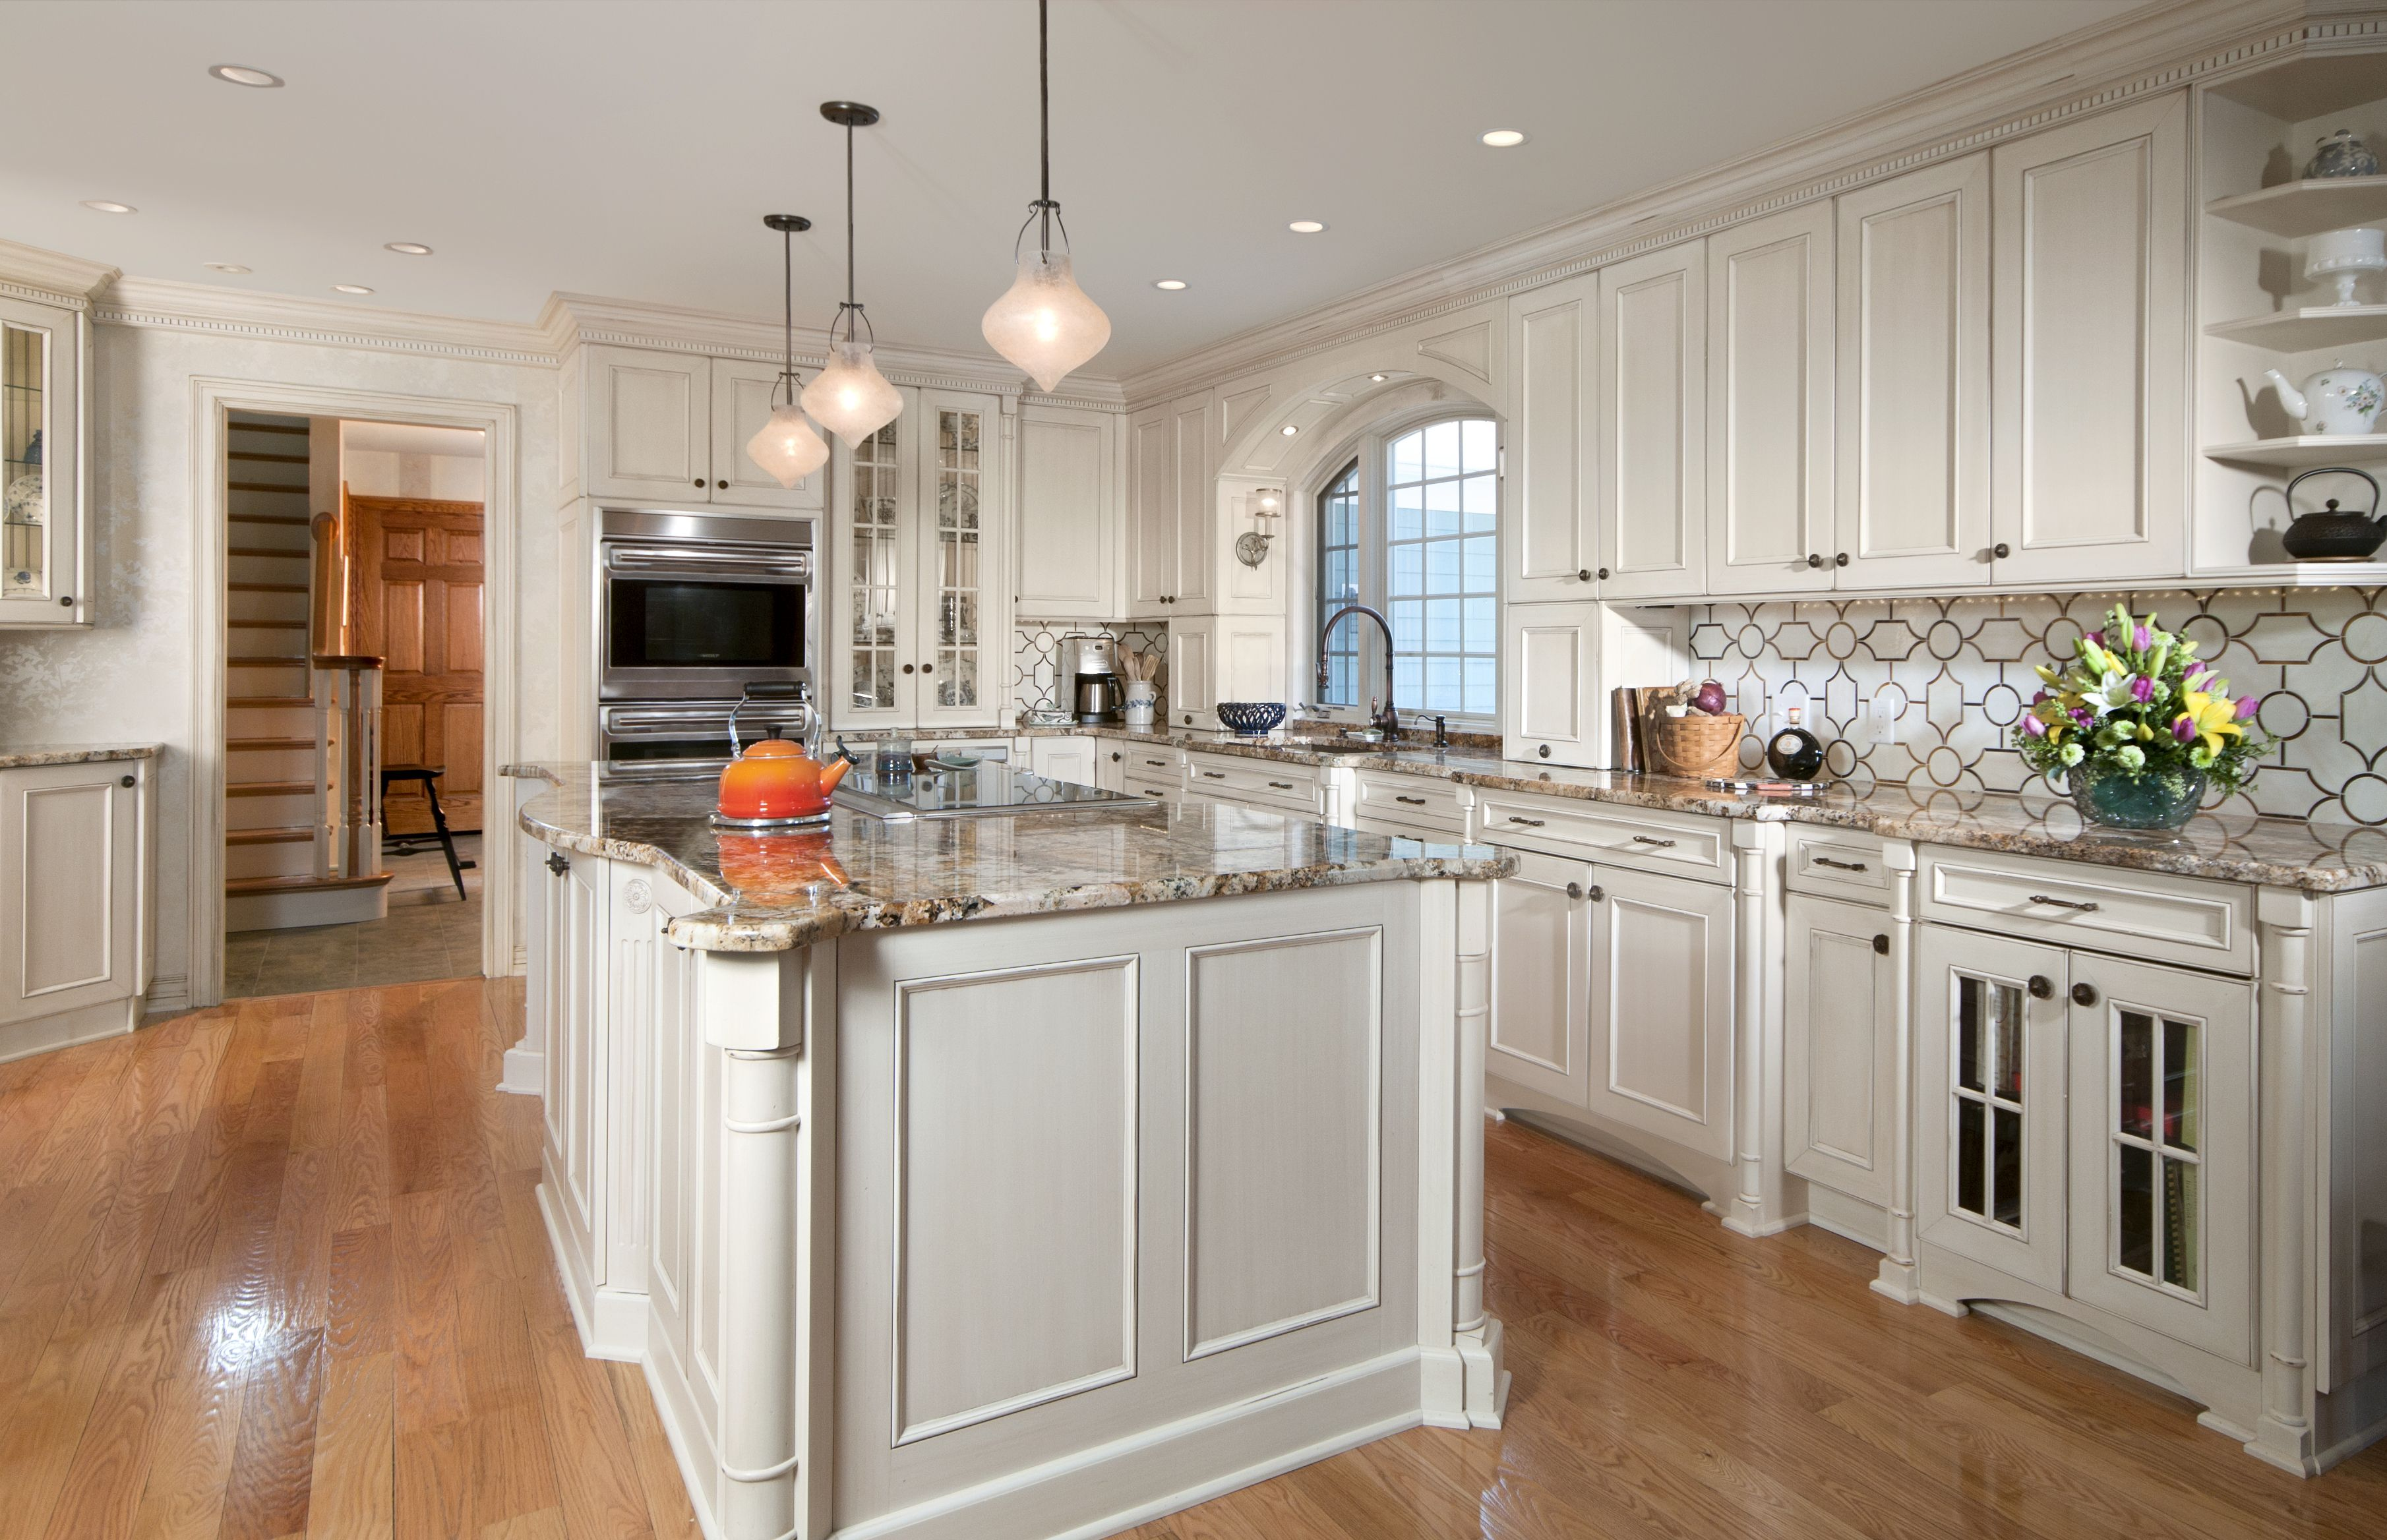 Since The Majority Of Kitchens Are Updated Every 16 Years Or More It Is Not Surprising Kitchen Design Decor Kitchen Redecorating Kitchen And Bath Remodeling